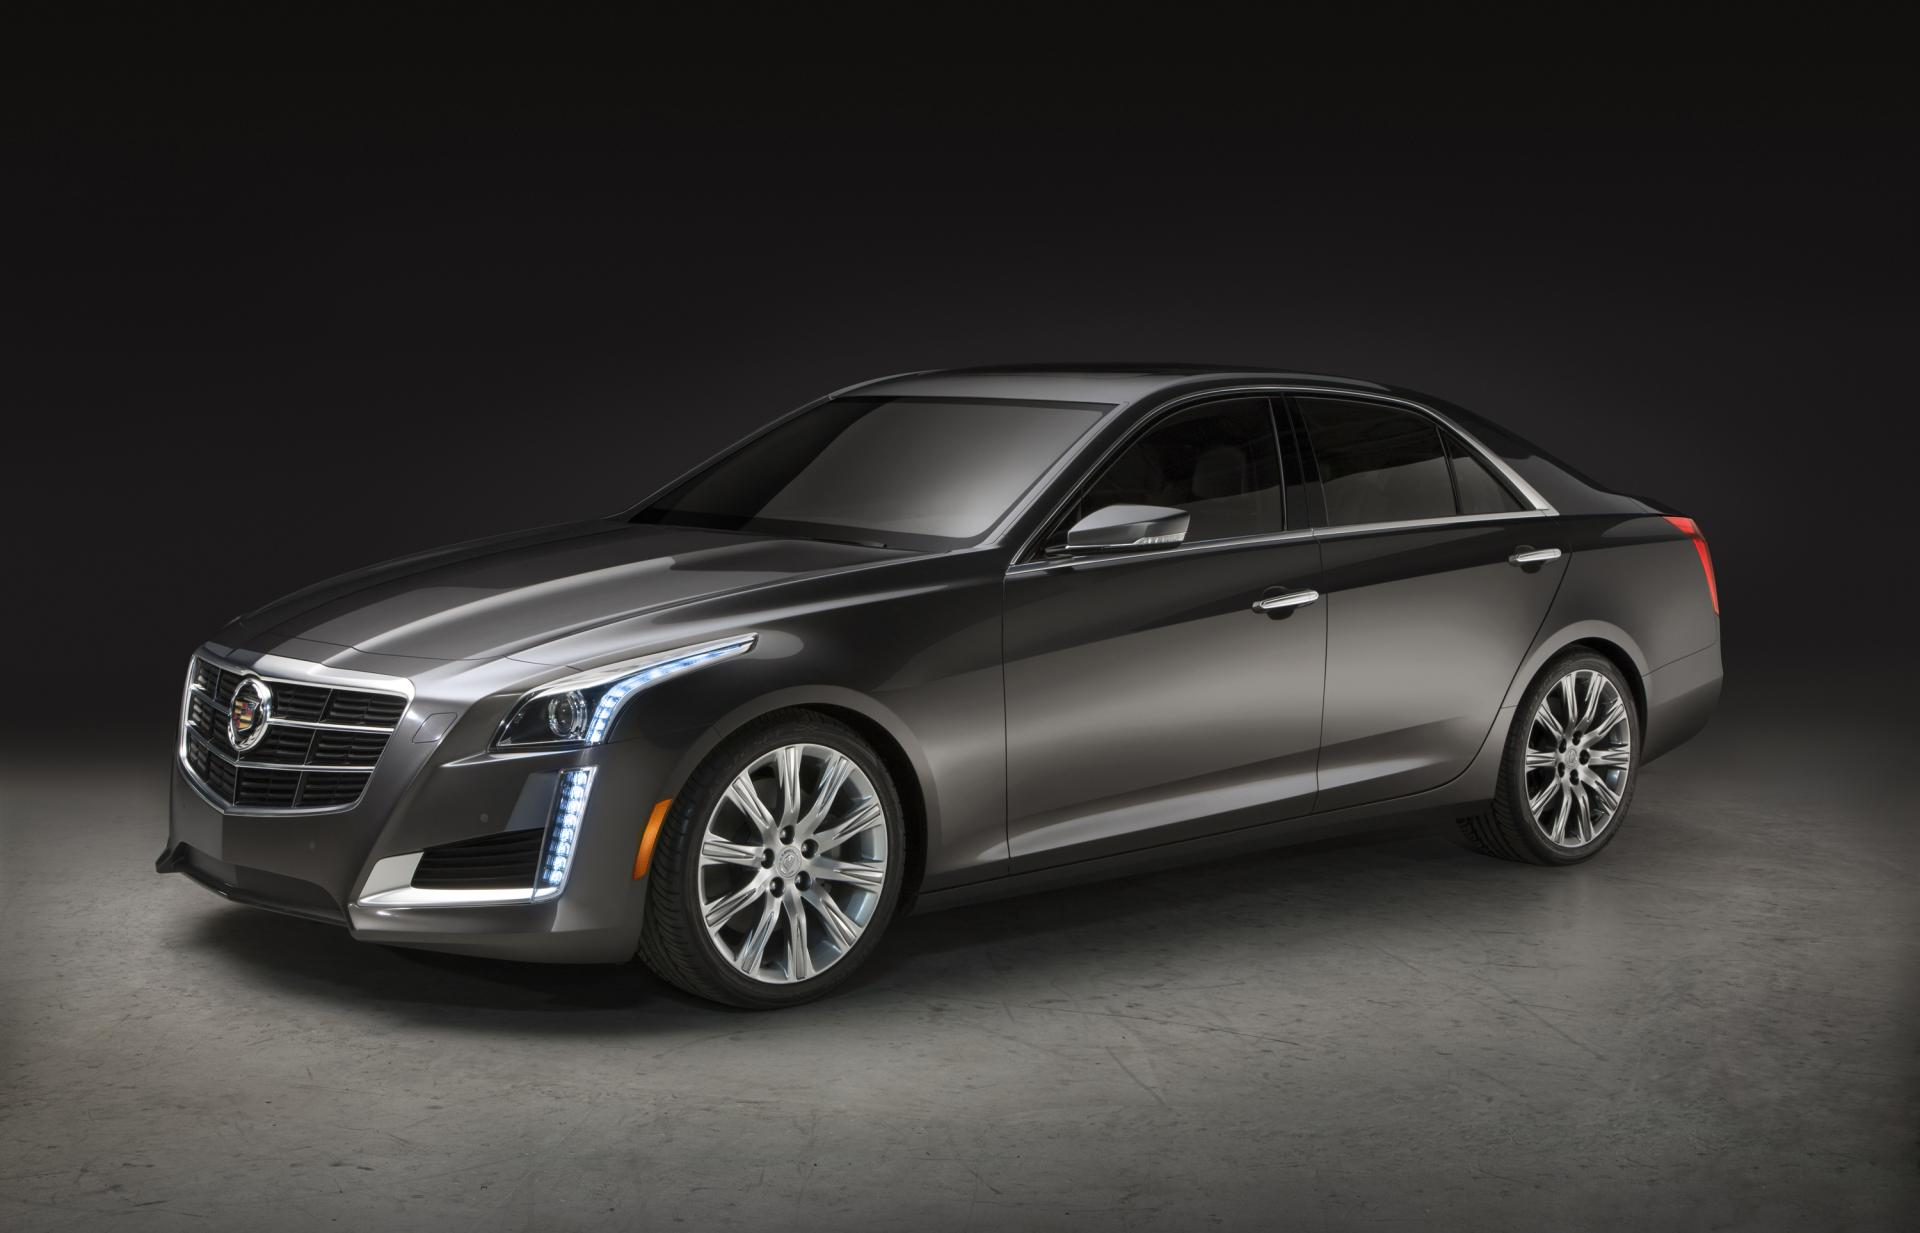 2014 Cadillac Cts News And Information Conceptcarz Com